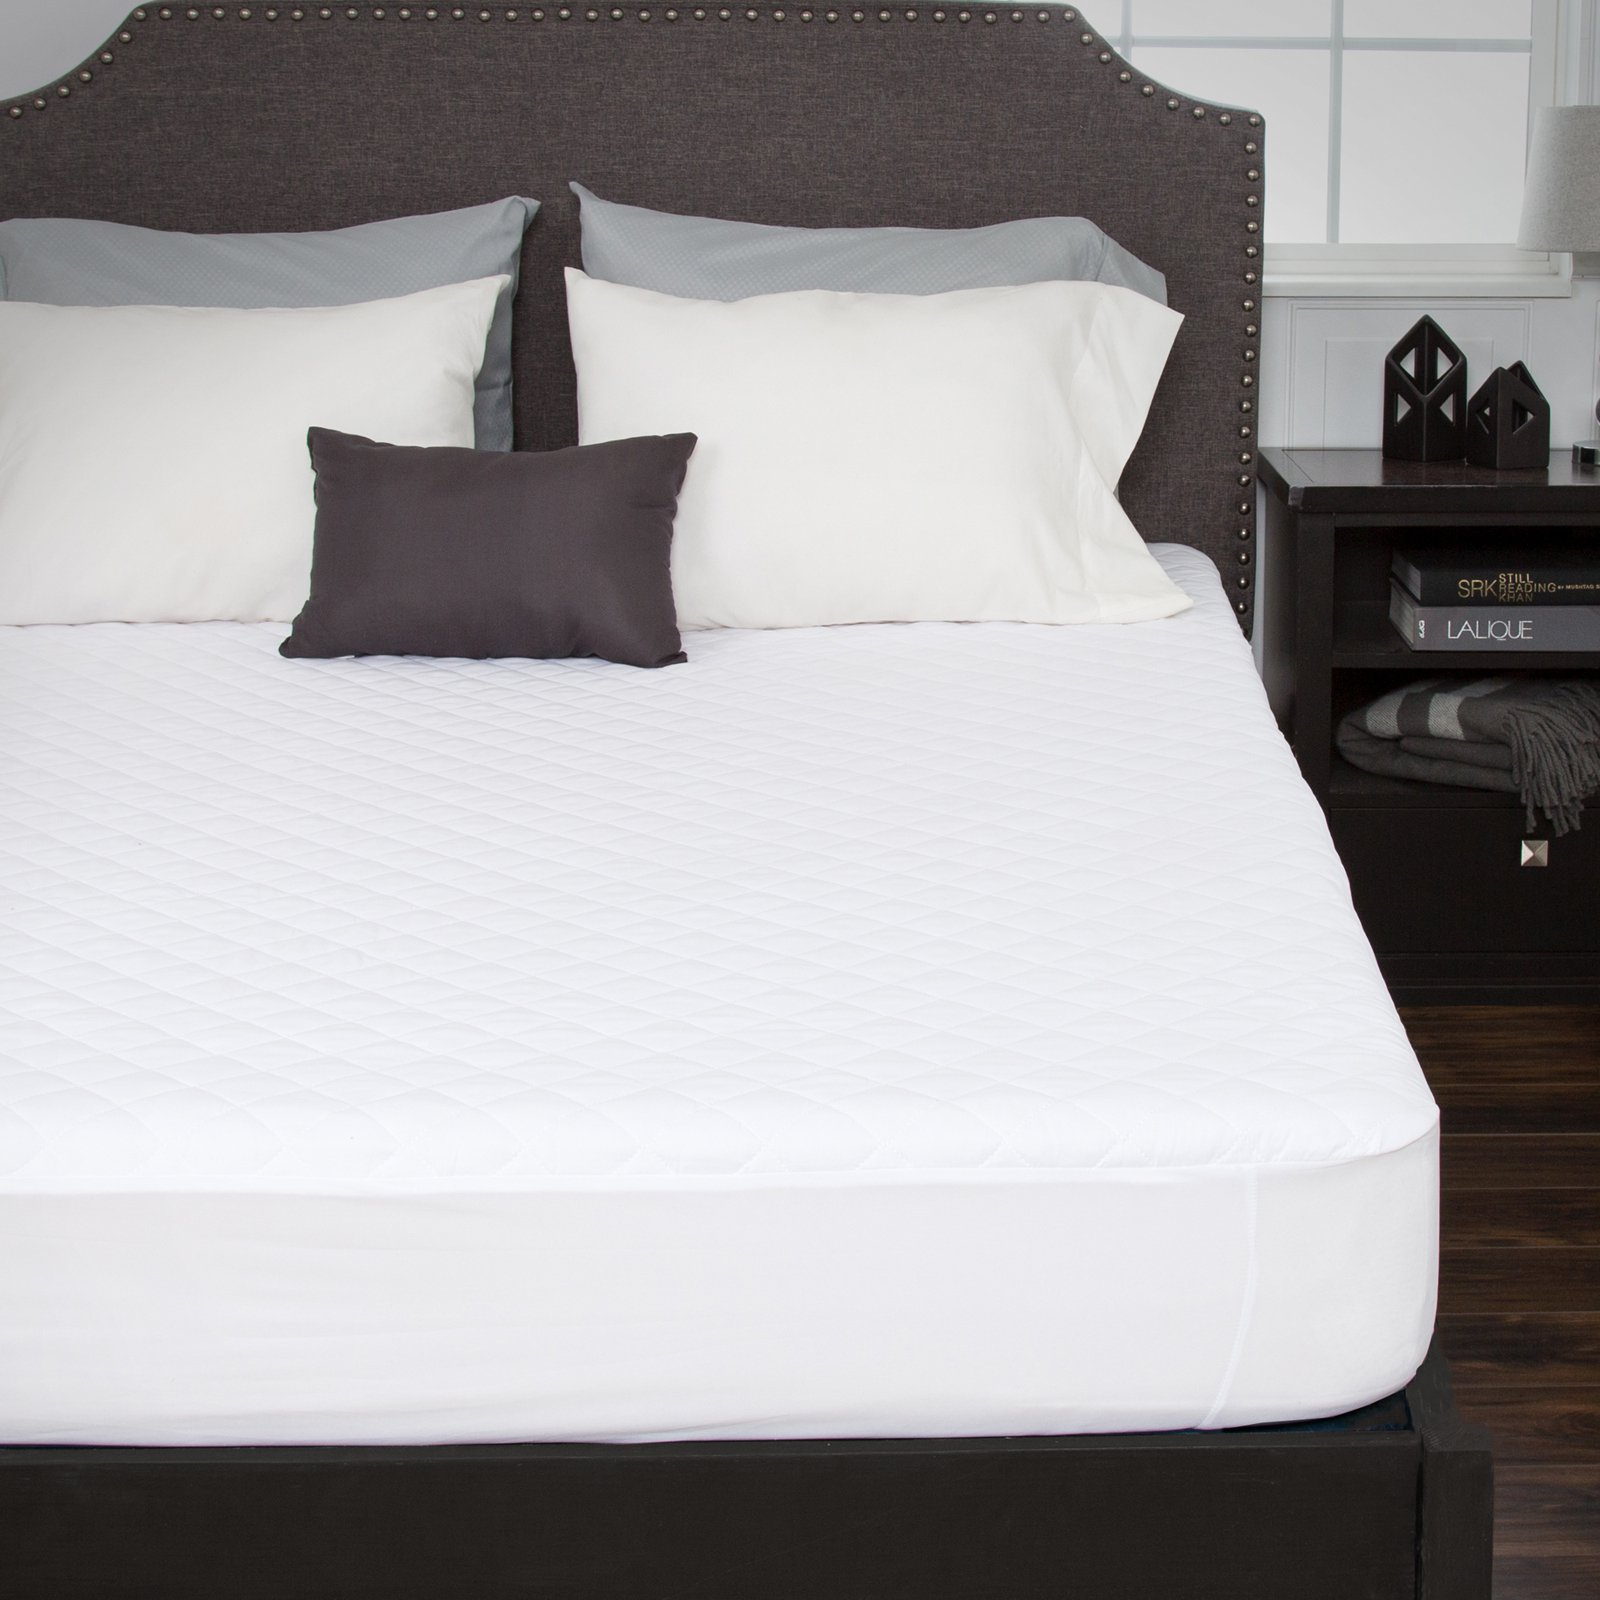 Waterproof Mattress Pad with Fitted Skirt by Bluestone